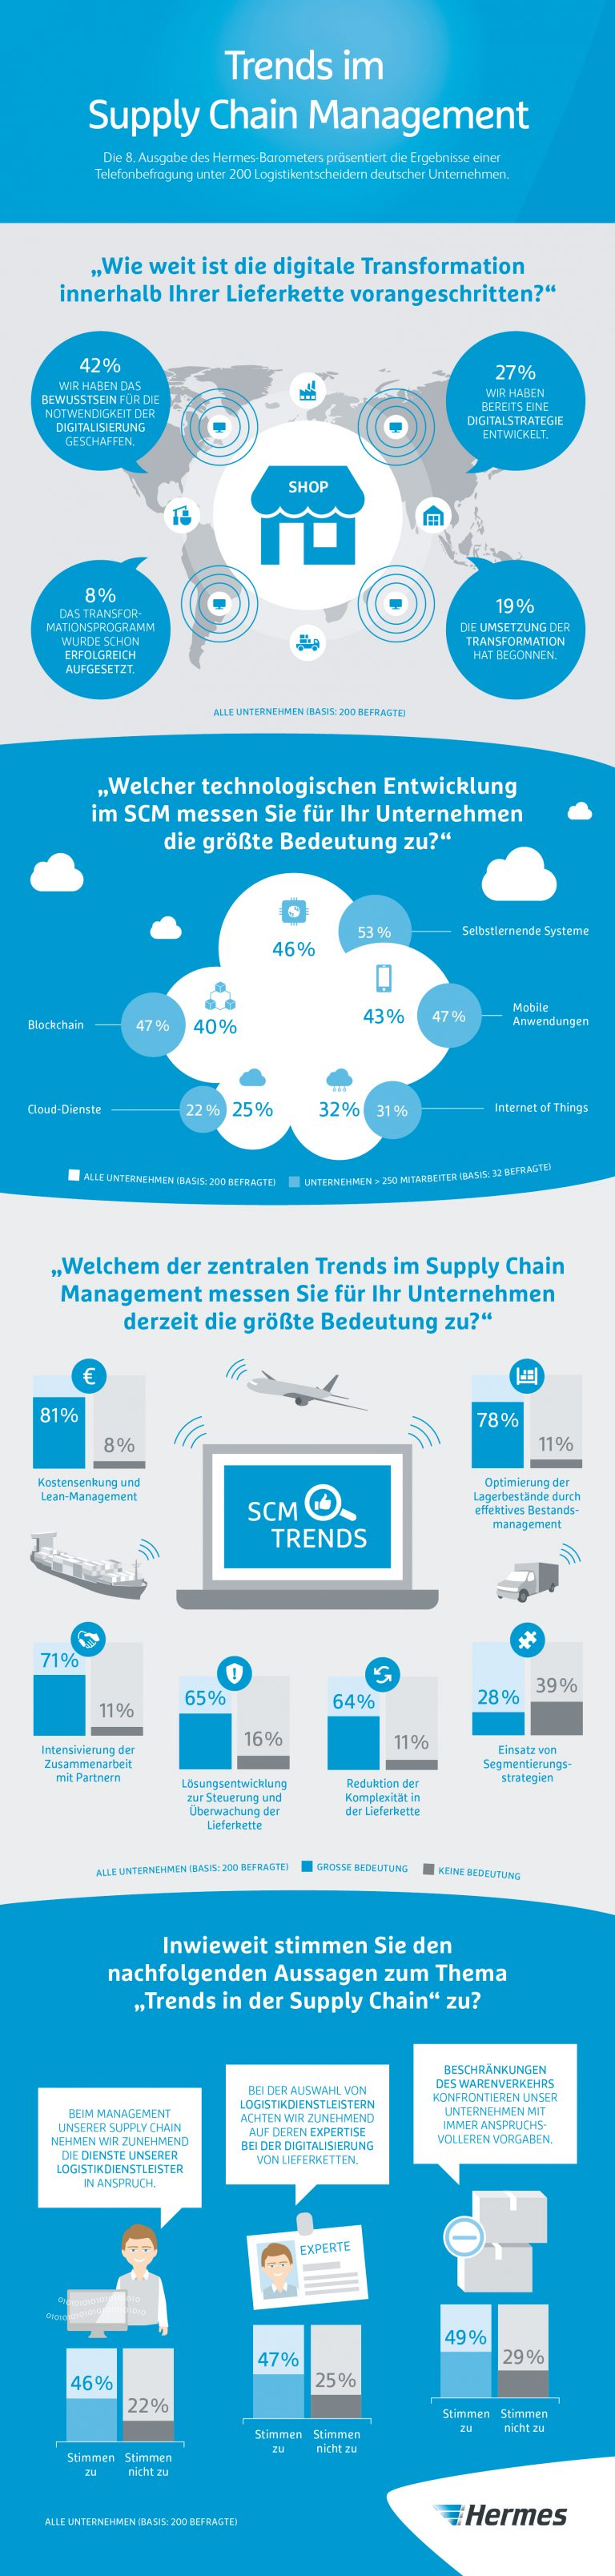 Infografik: Hermes-Barometer: Trends im Supply Chain Management